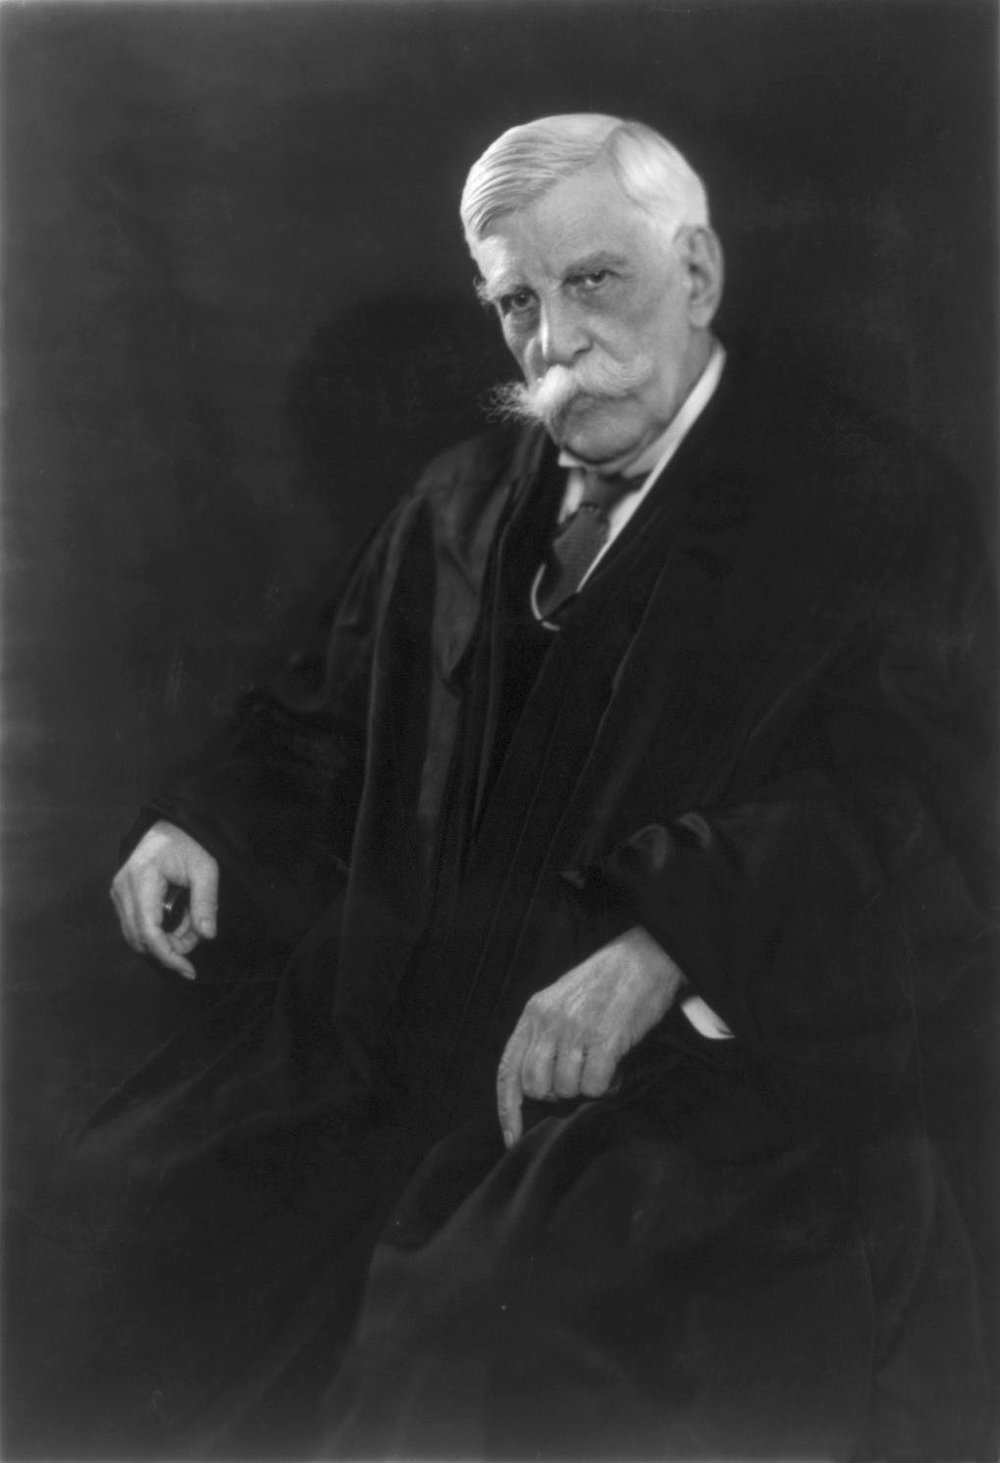 Copy of Oliver Wendell Holmes Jr.